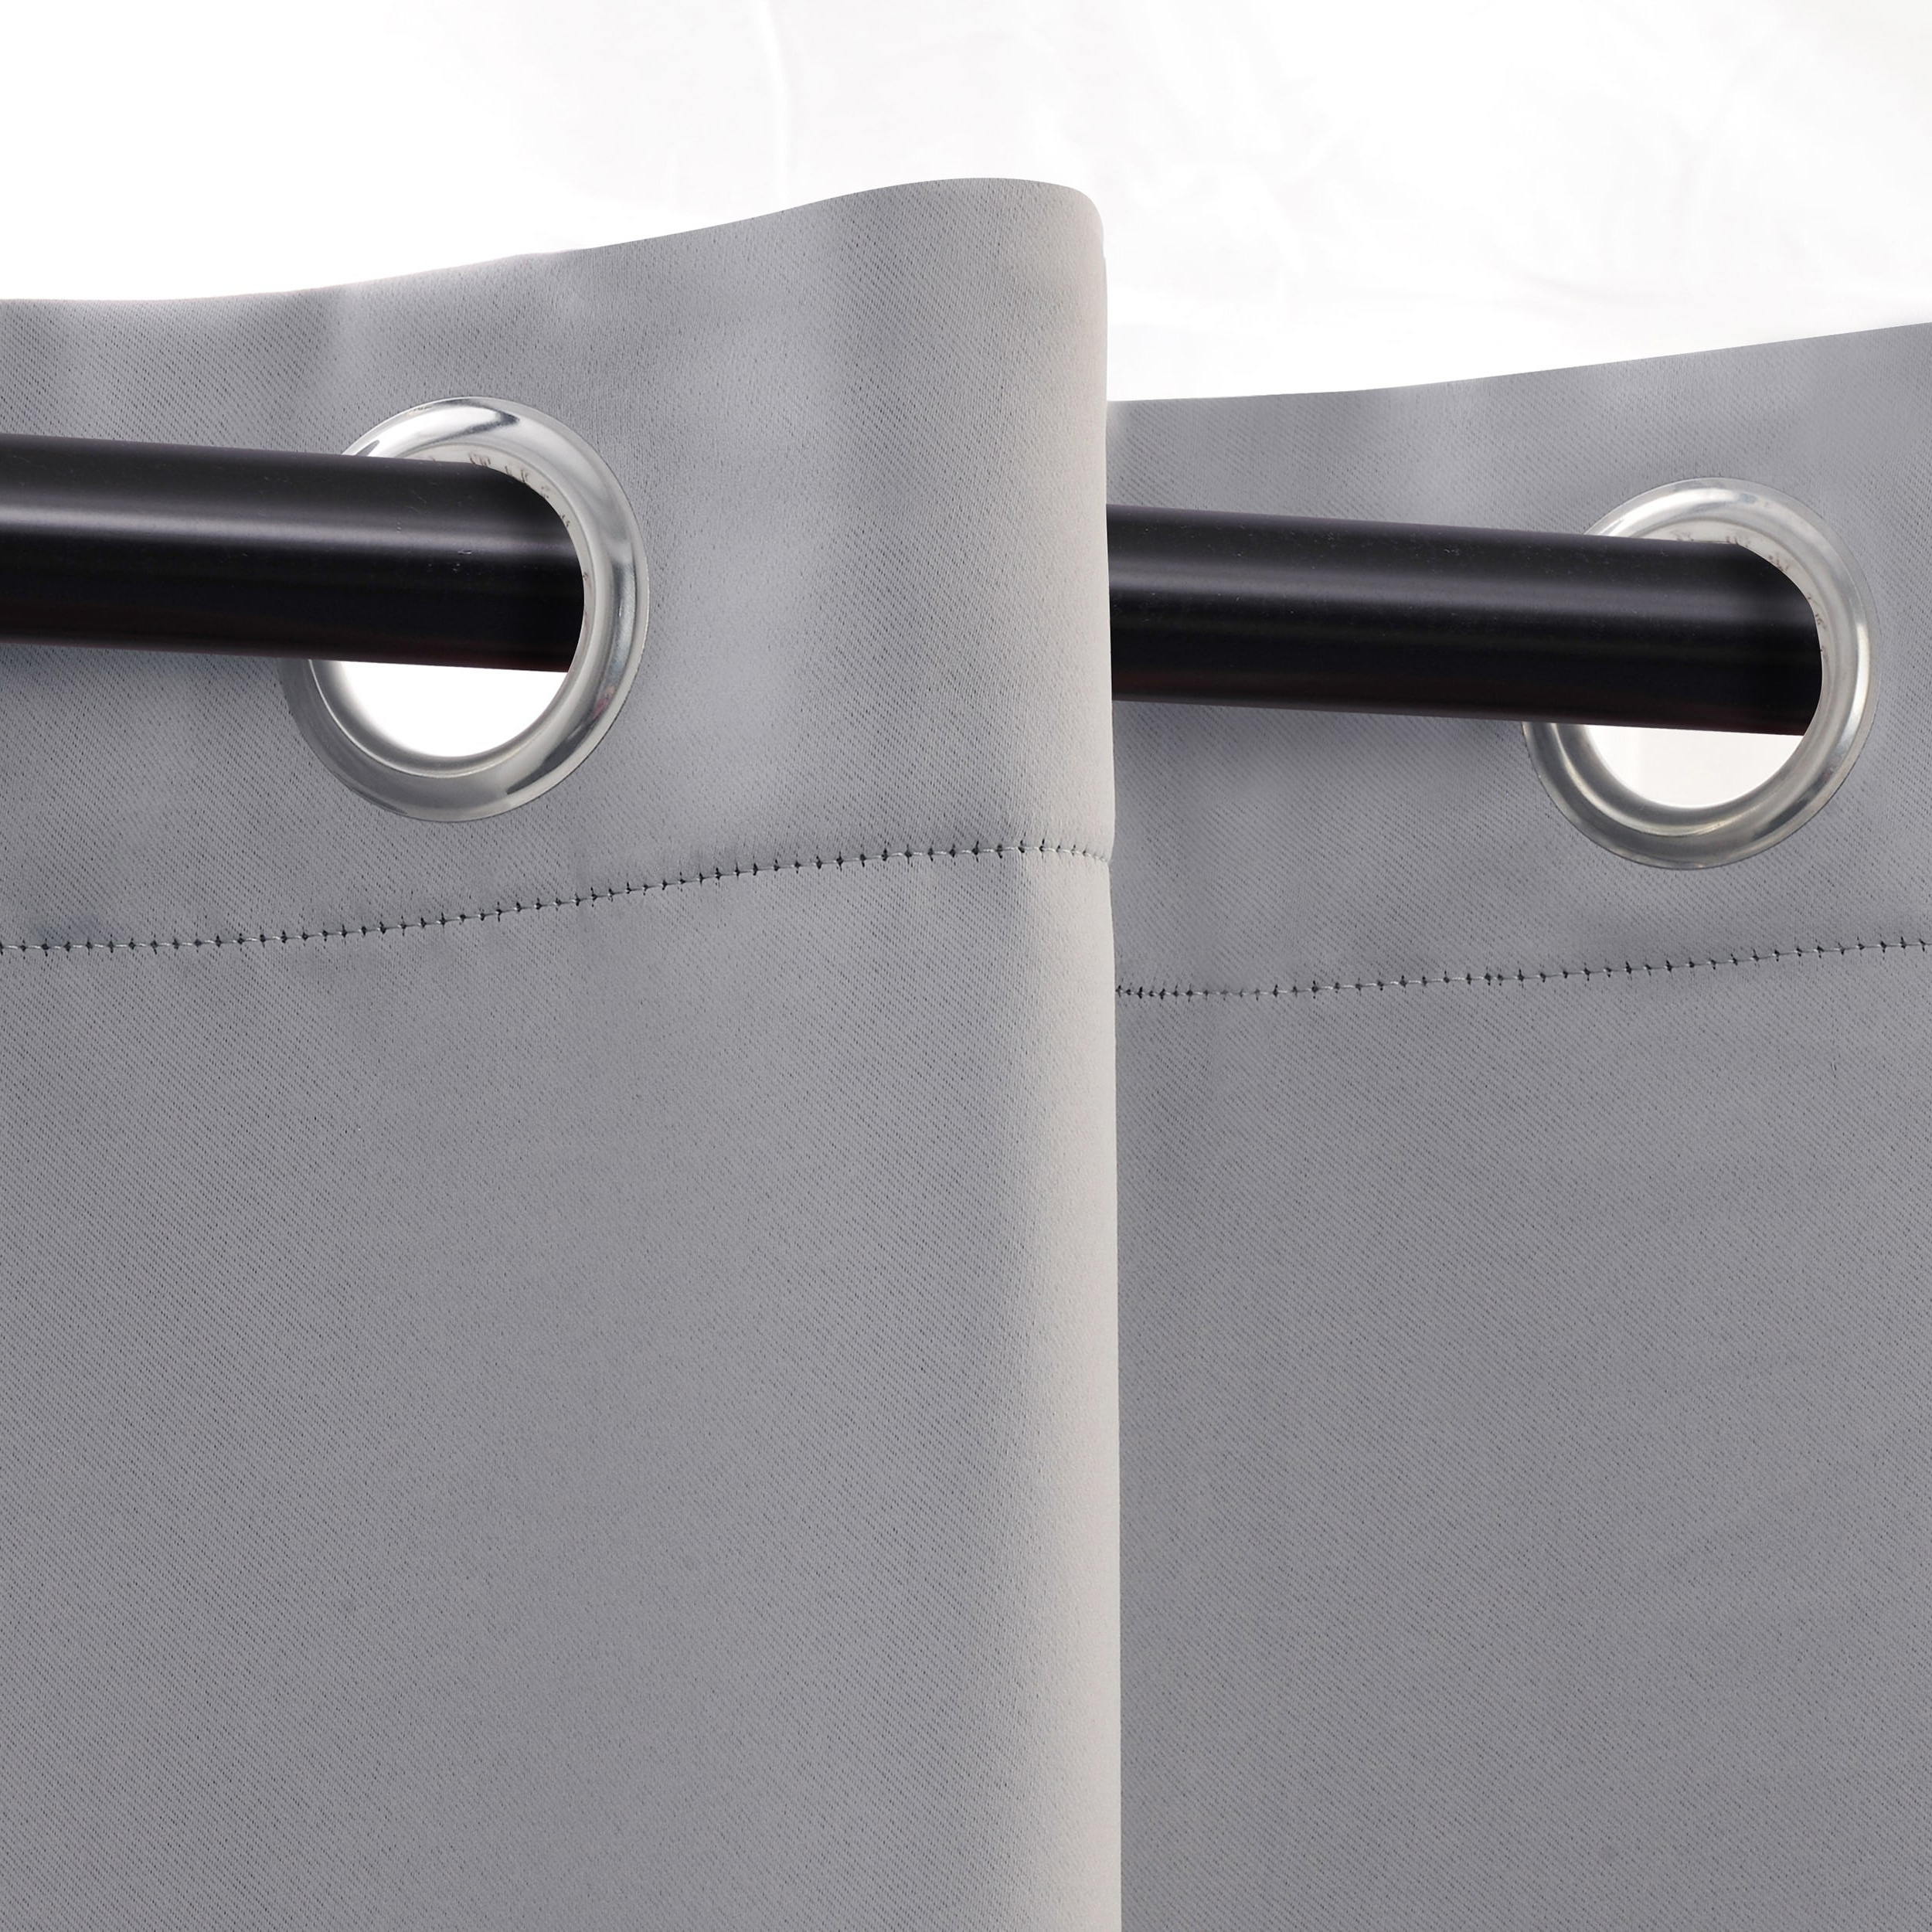 Superior Solid Insulated Thermal Blackout Grommet Curtain Panel Pair Intended For 2021 Superior Solid Insulated Thermal Blackout Grommet Curtain Panel Pairs (View 16 of 20)